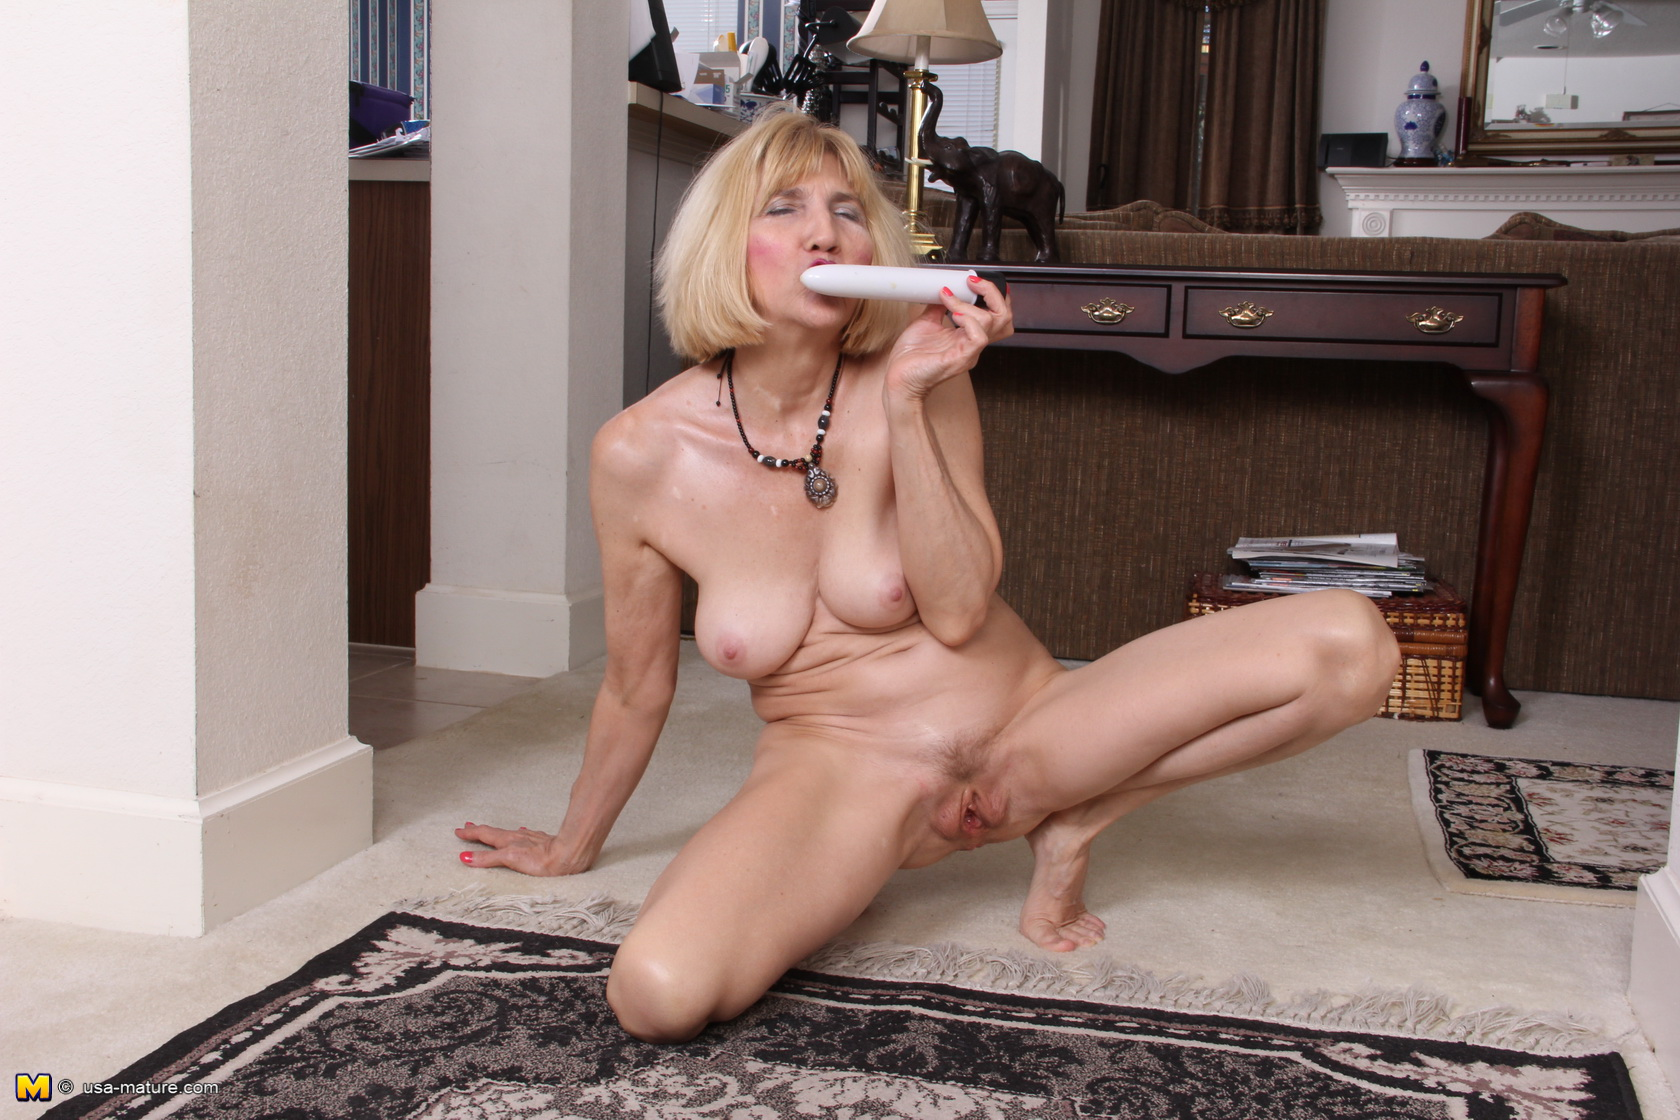 Lily. nude house wife blogspot